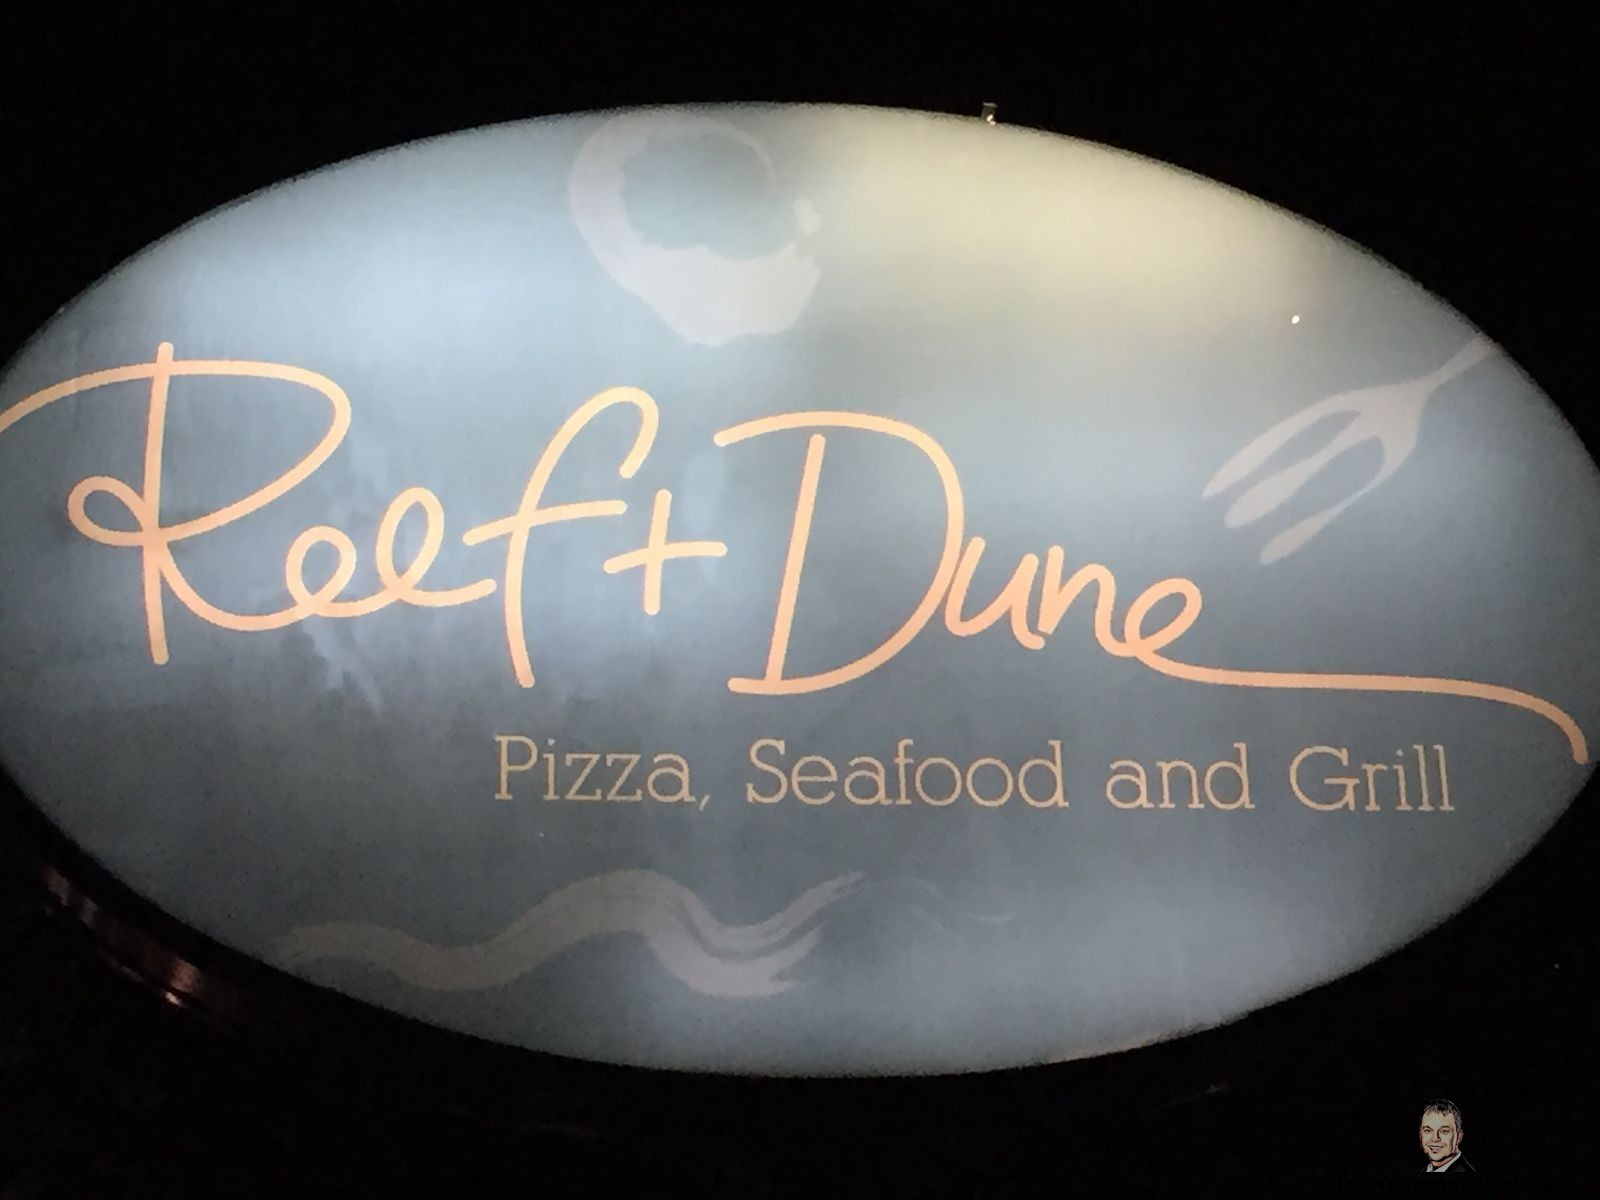 St Lucia Reef Dune Seafood Pizza Grill